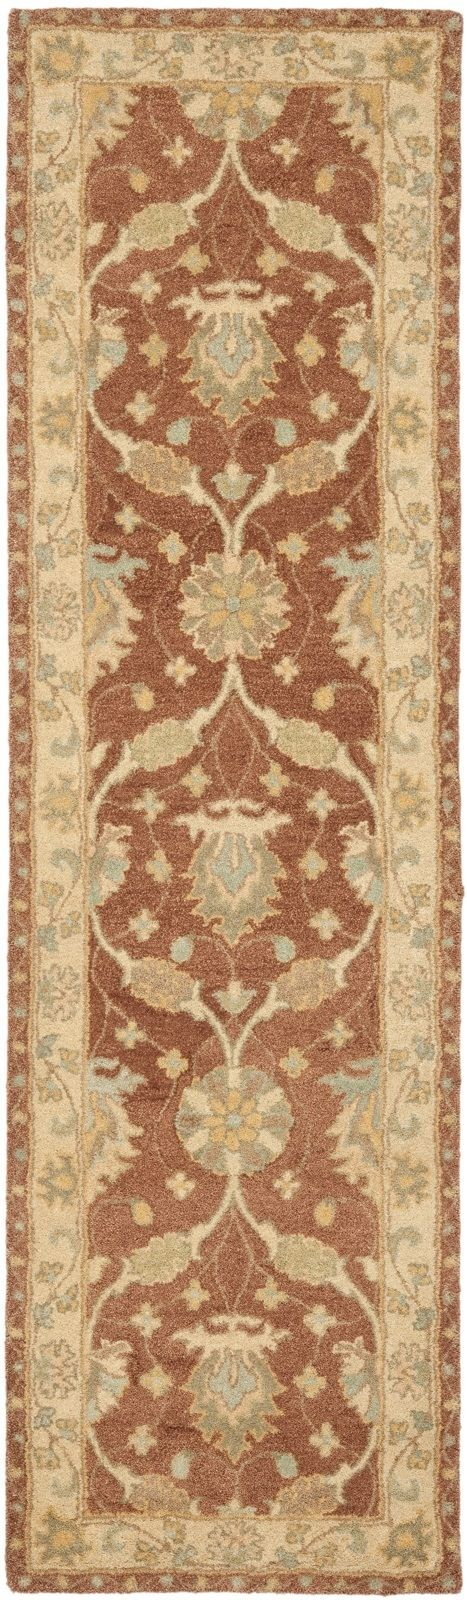 safavieh antiquities traditional area rug collection